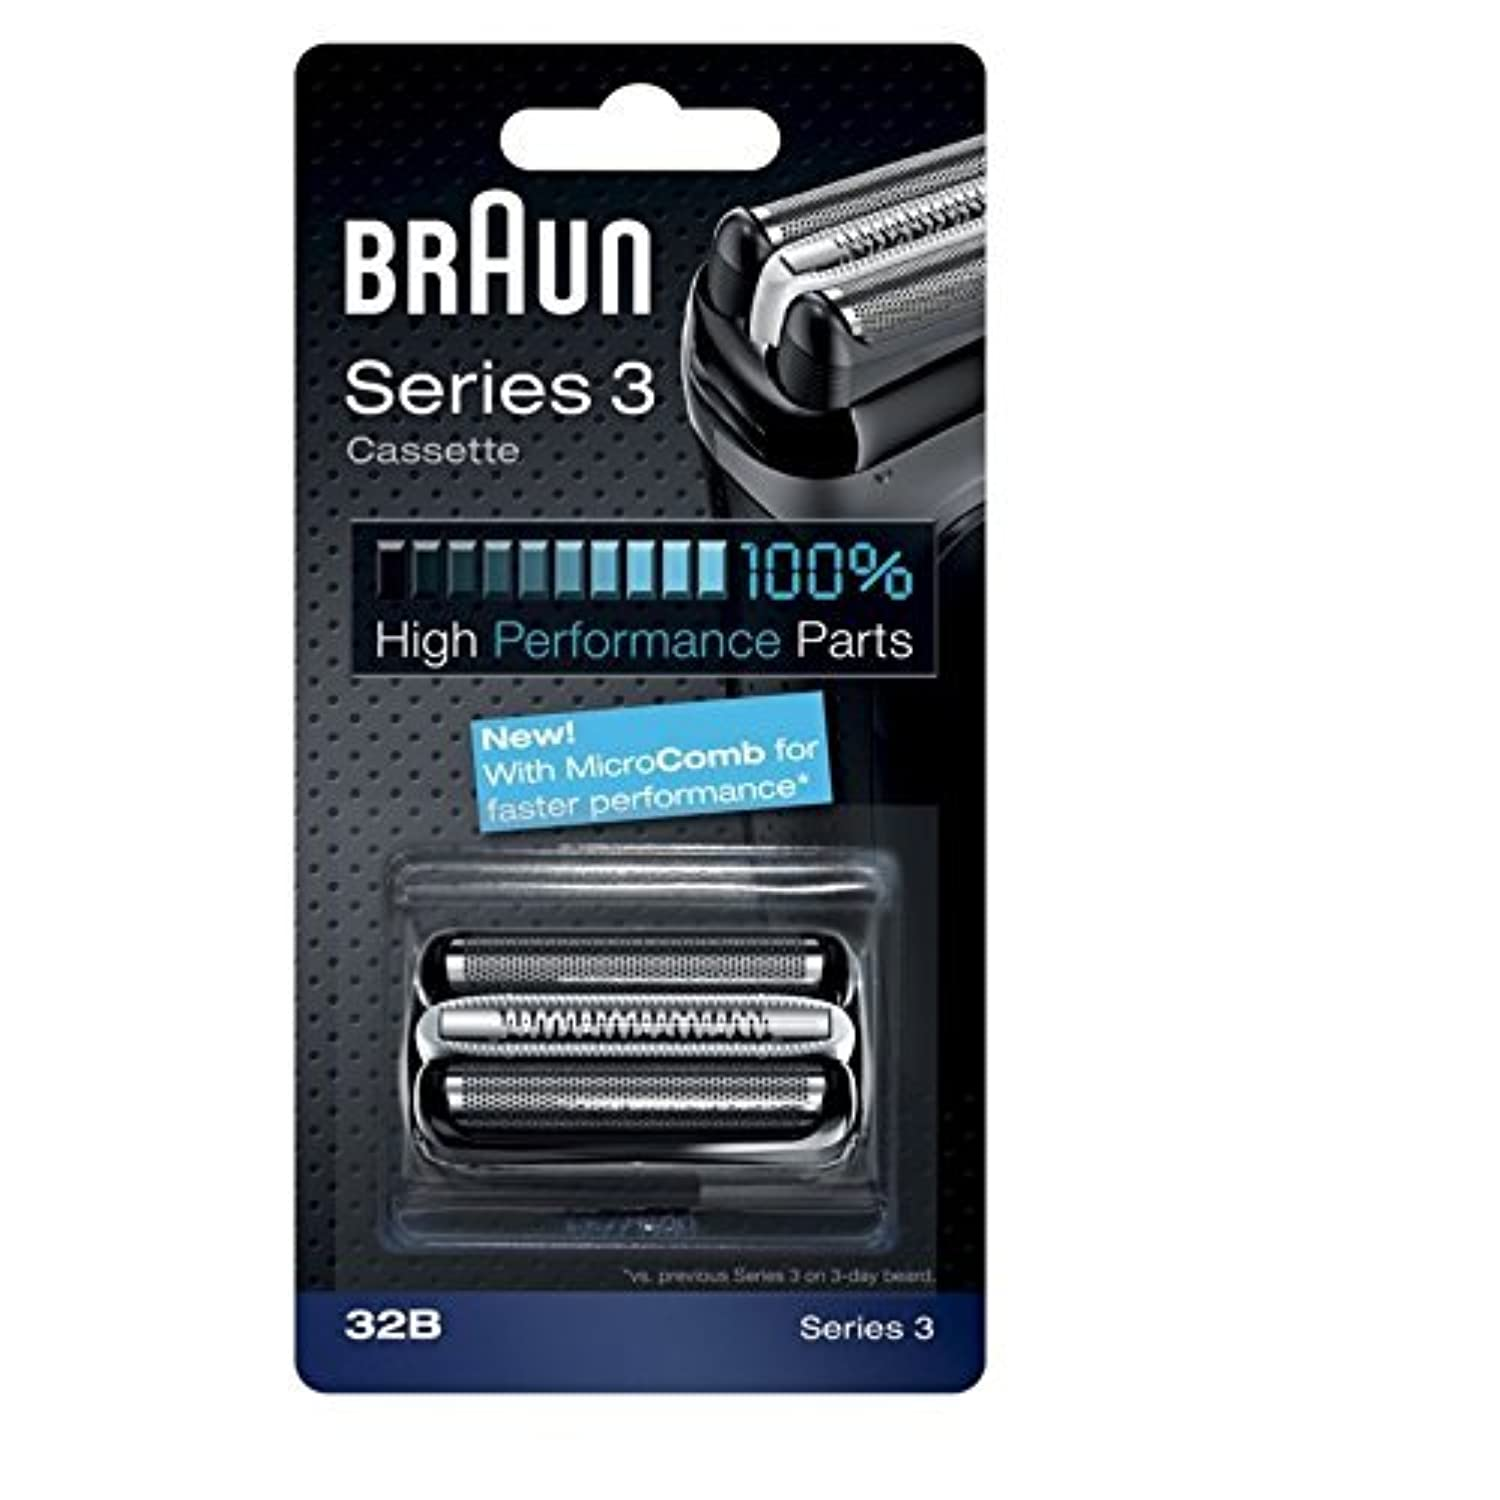 Braun razor Replacement Foil & Cutter Cassette 32B Series 3 320 330 340 350CC black shaving heads [並行輸入品]